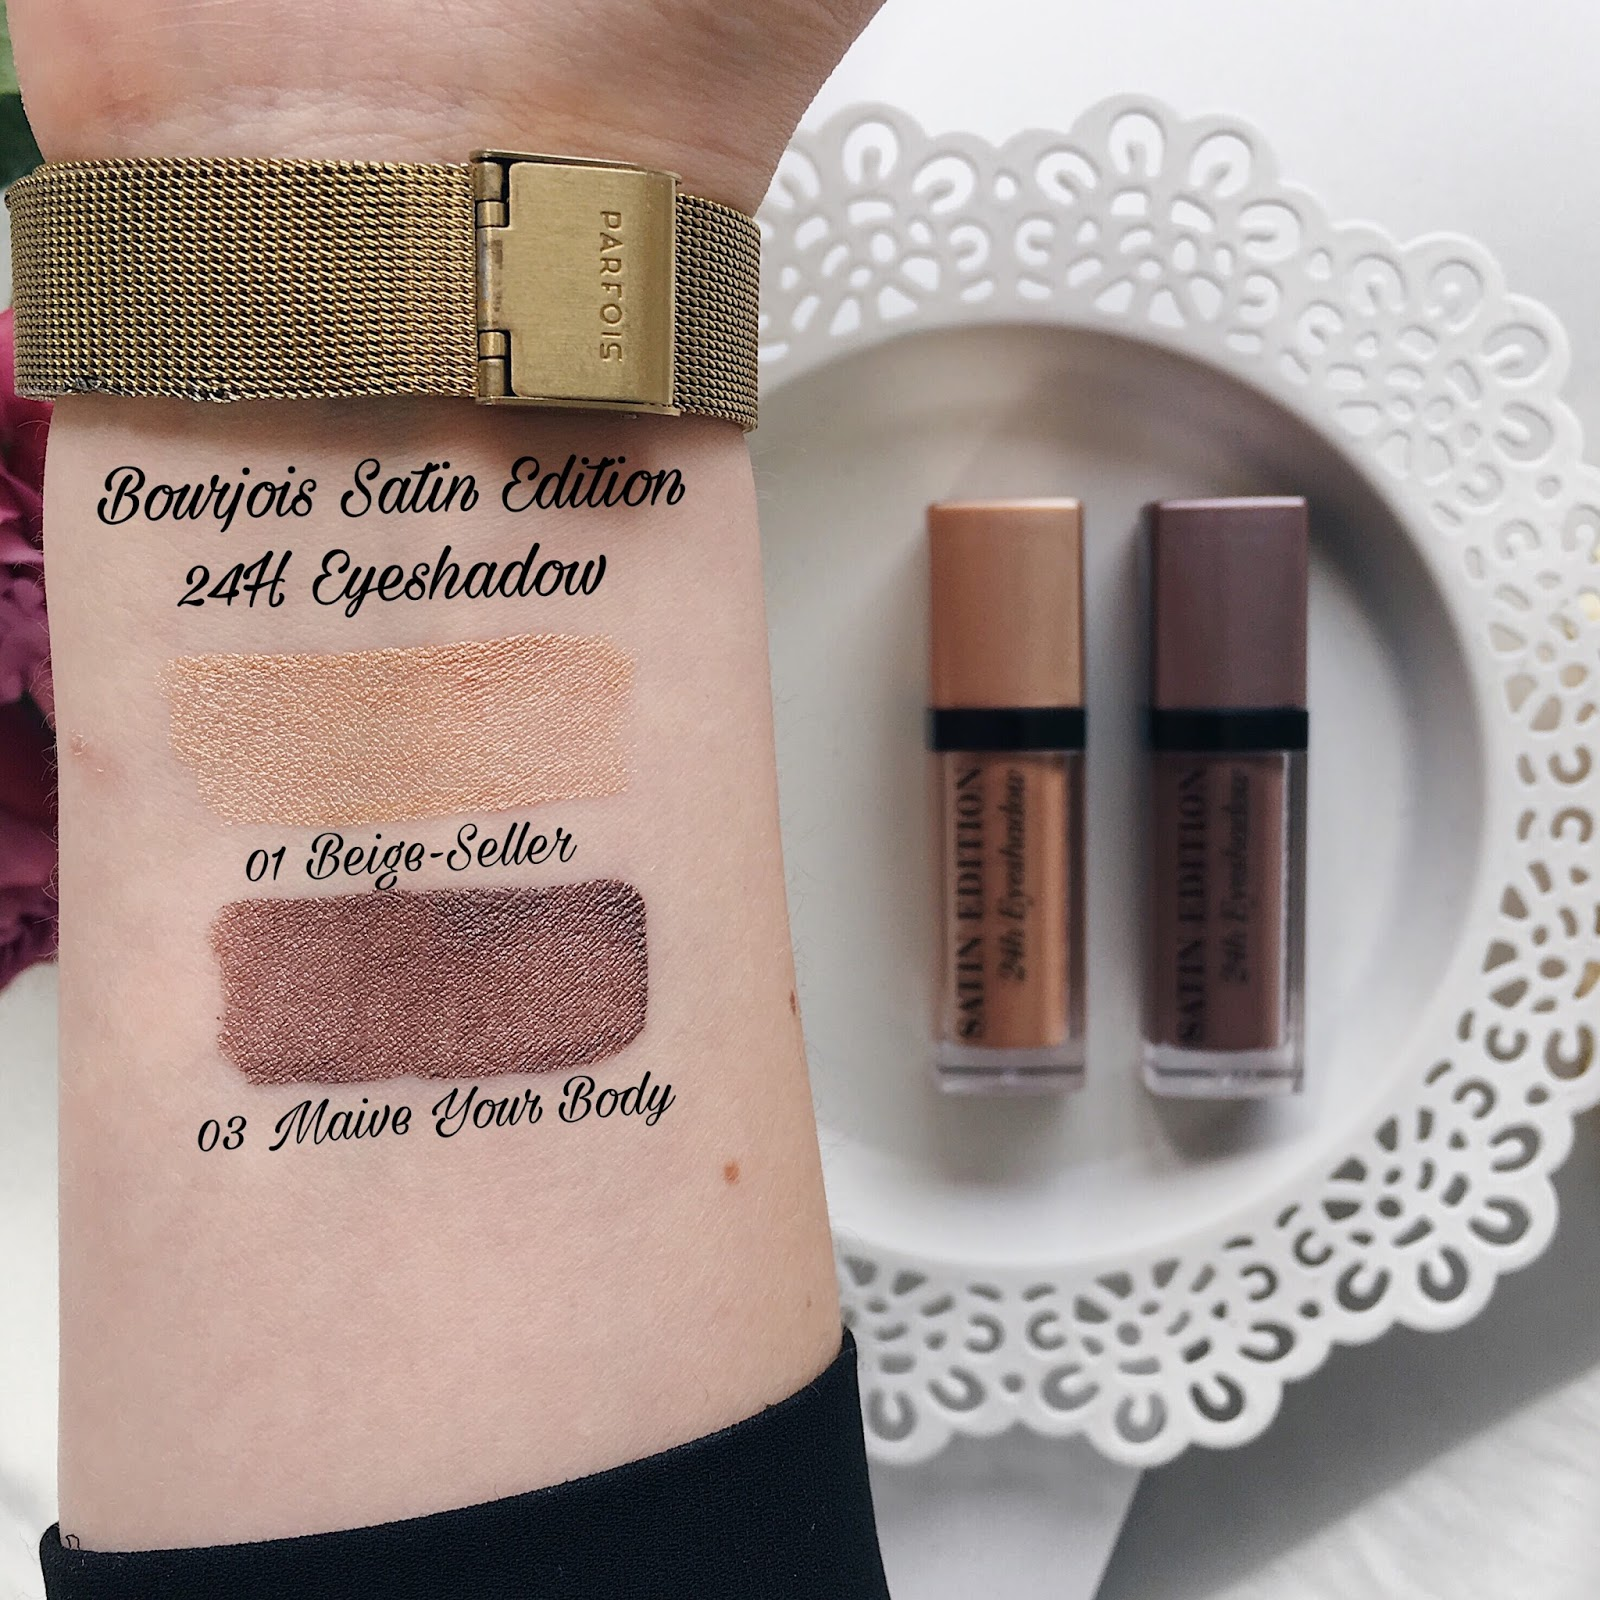 Bourjois Paris Satin Edition 24H swatches